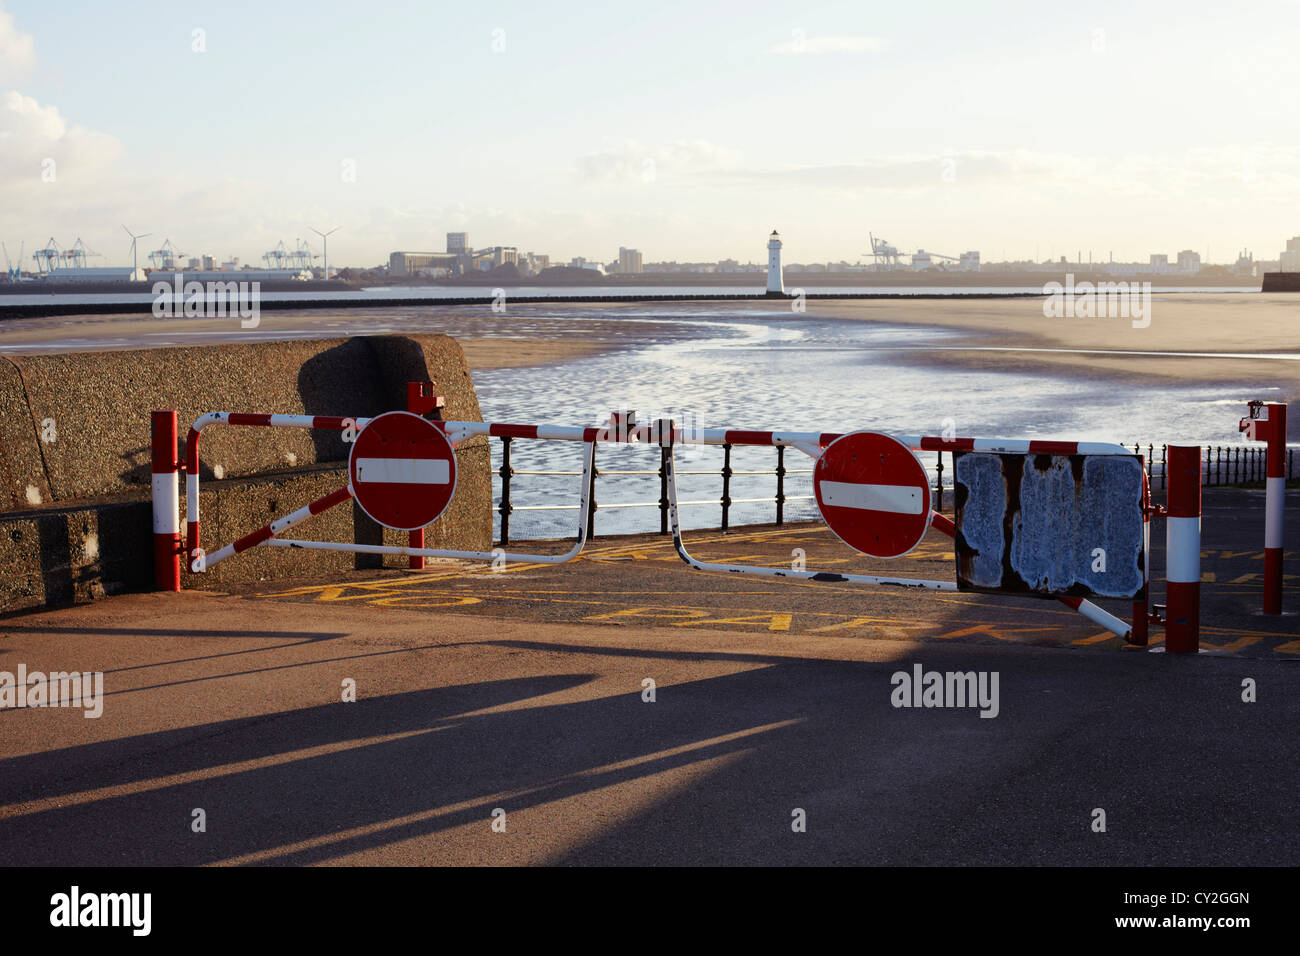 No entry to New Brighton beach at Liverpool - Stock Image